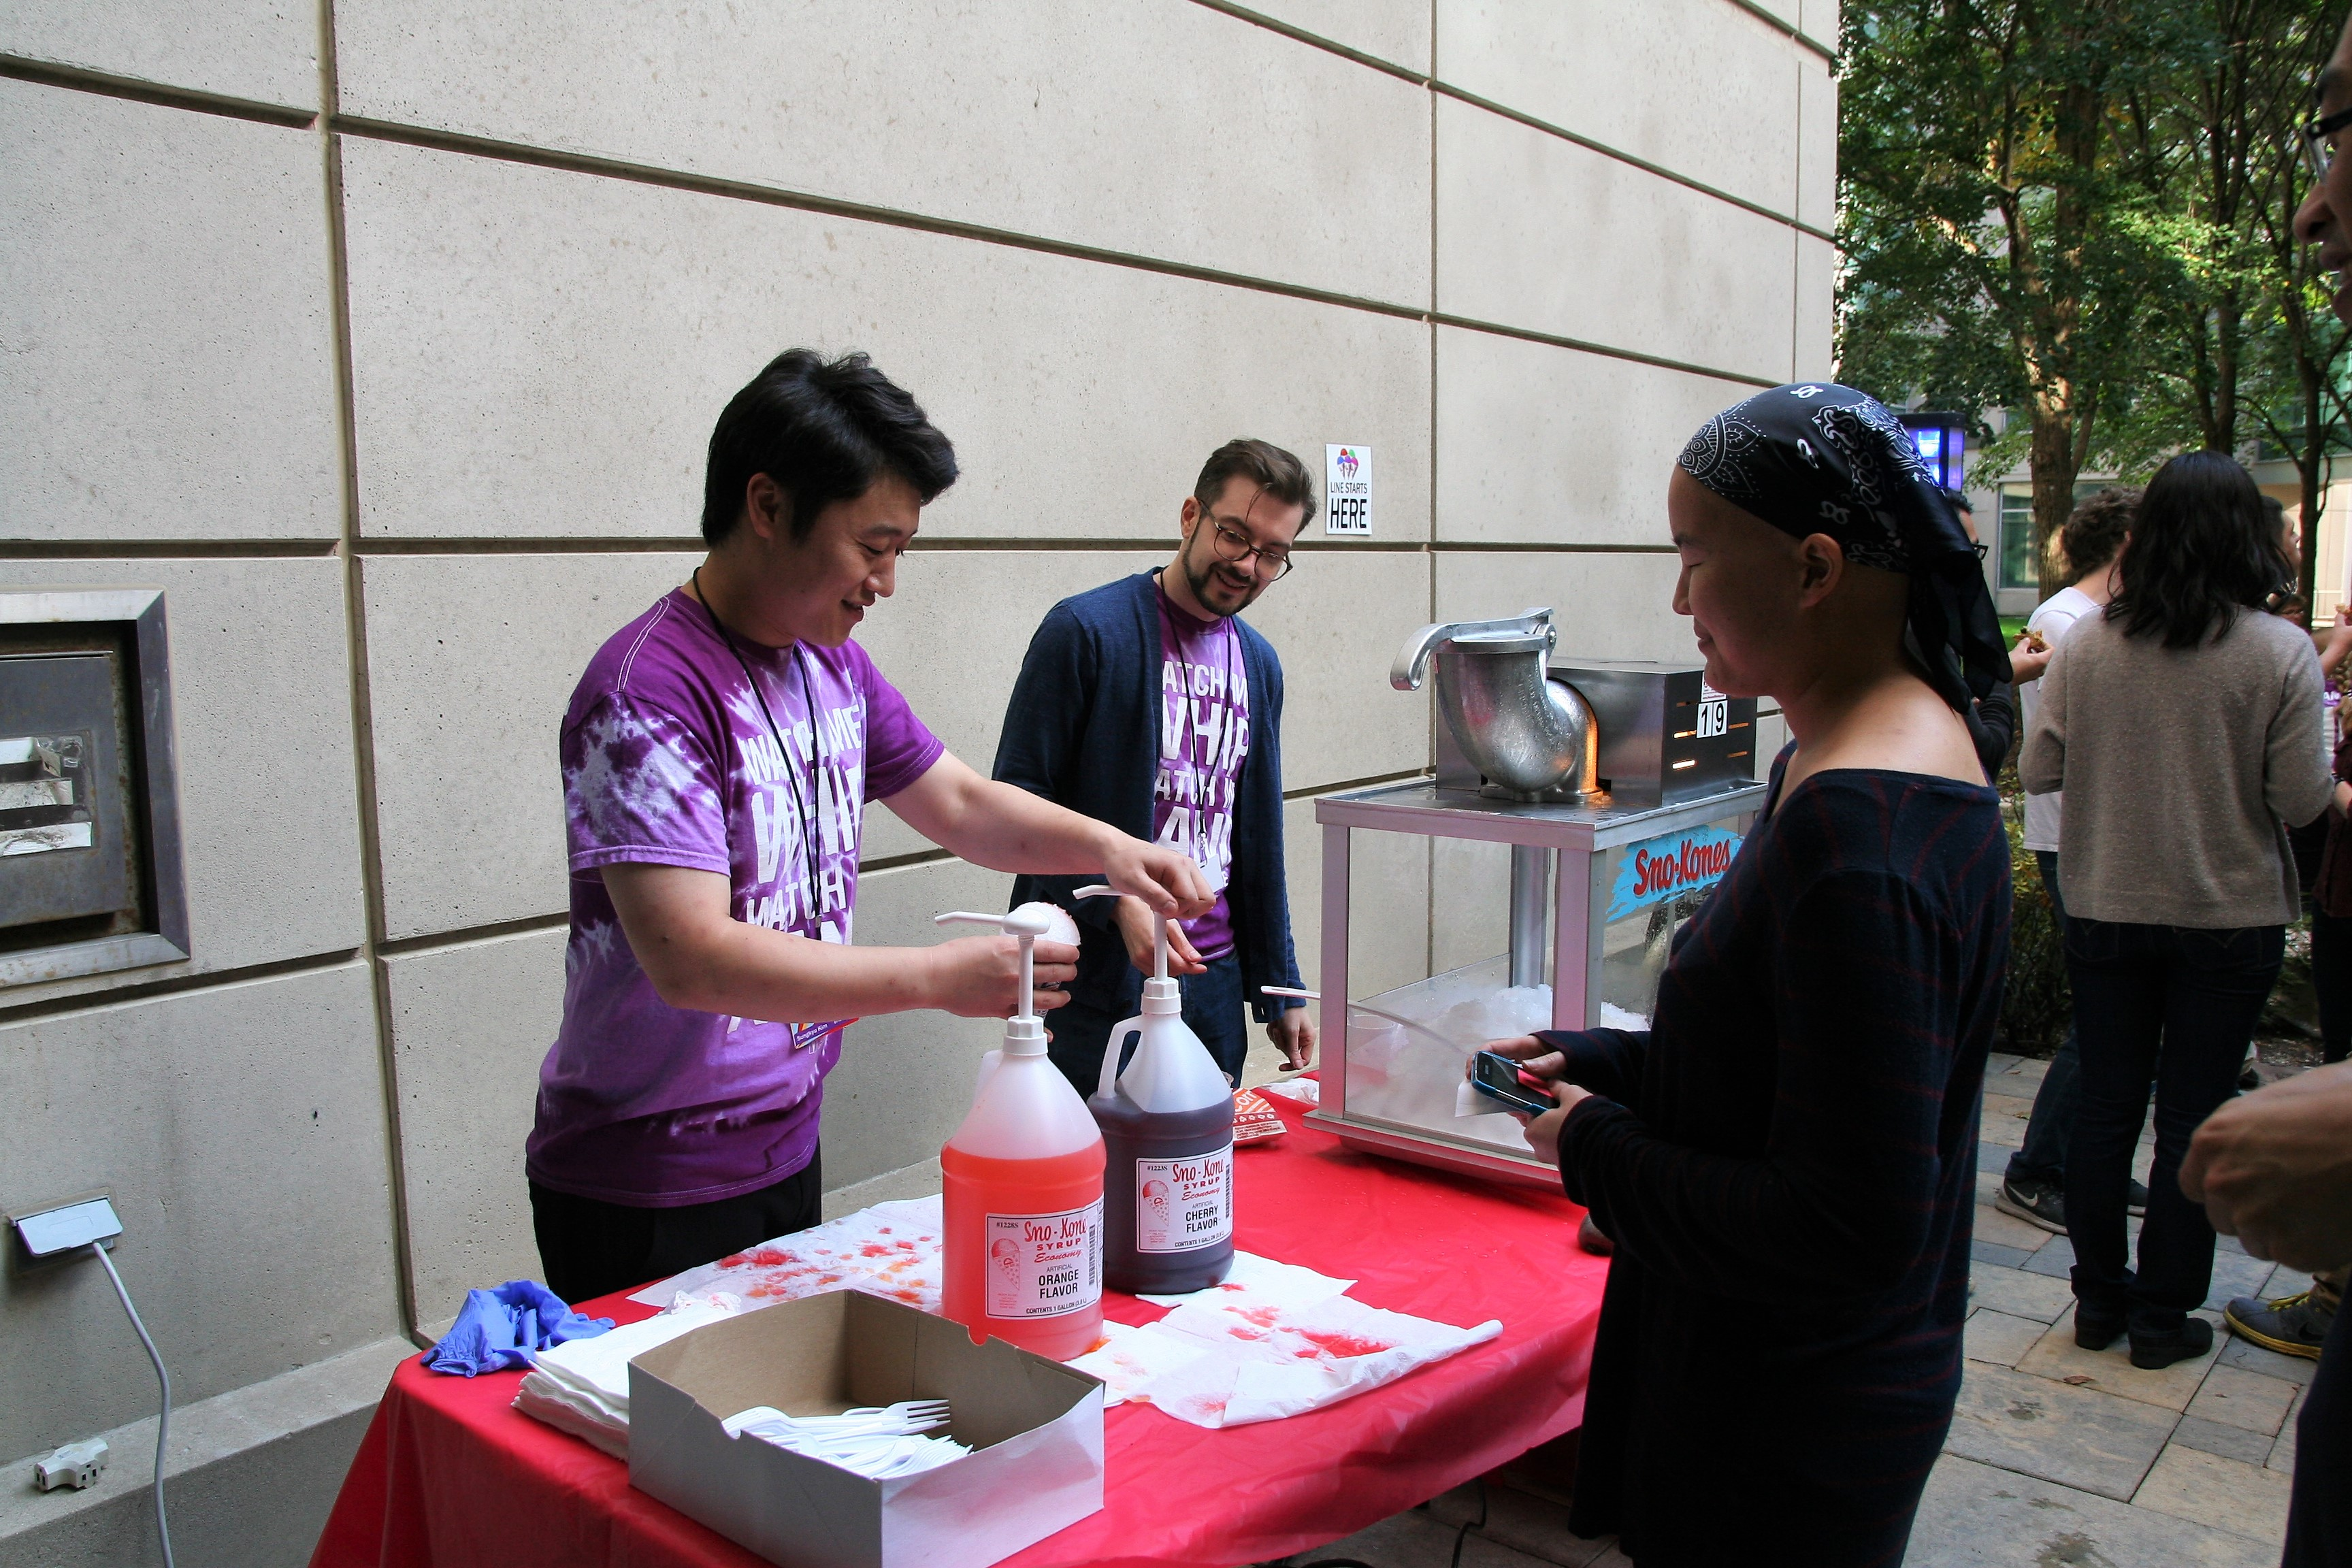 Dr. Sungkyu Kim and Eric Roth make sno cones.